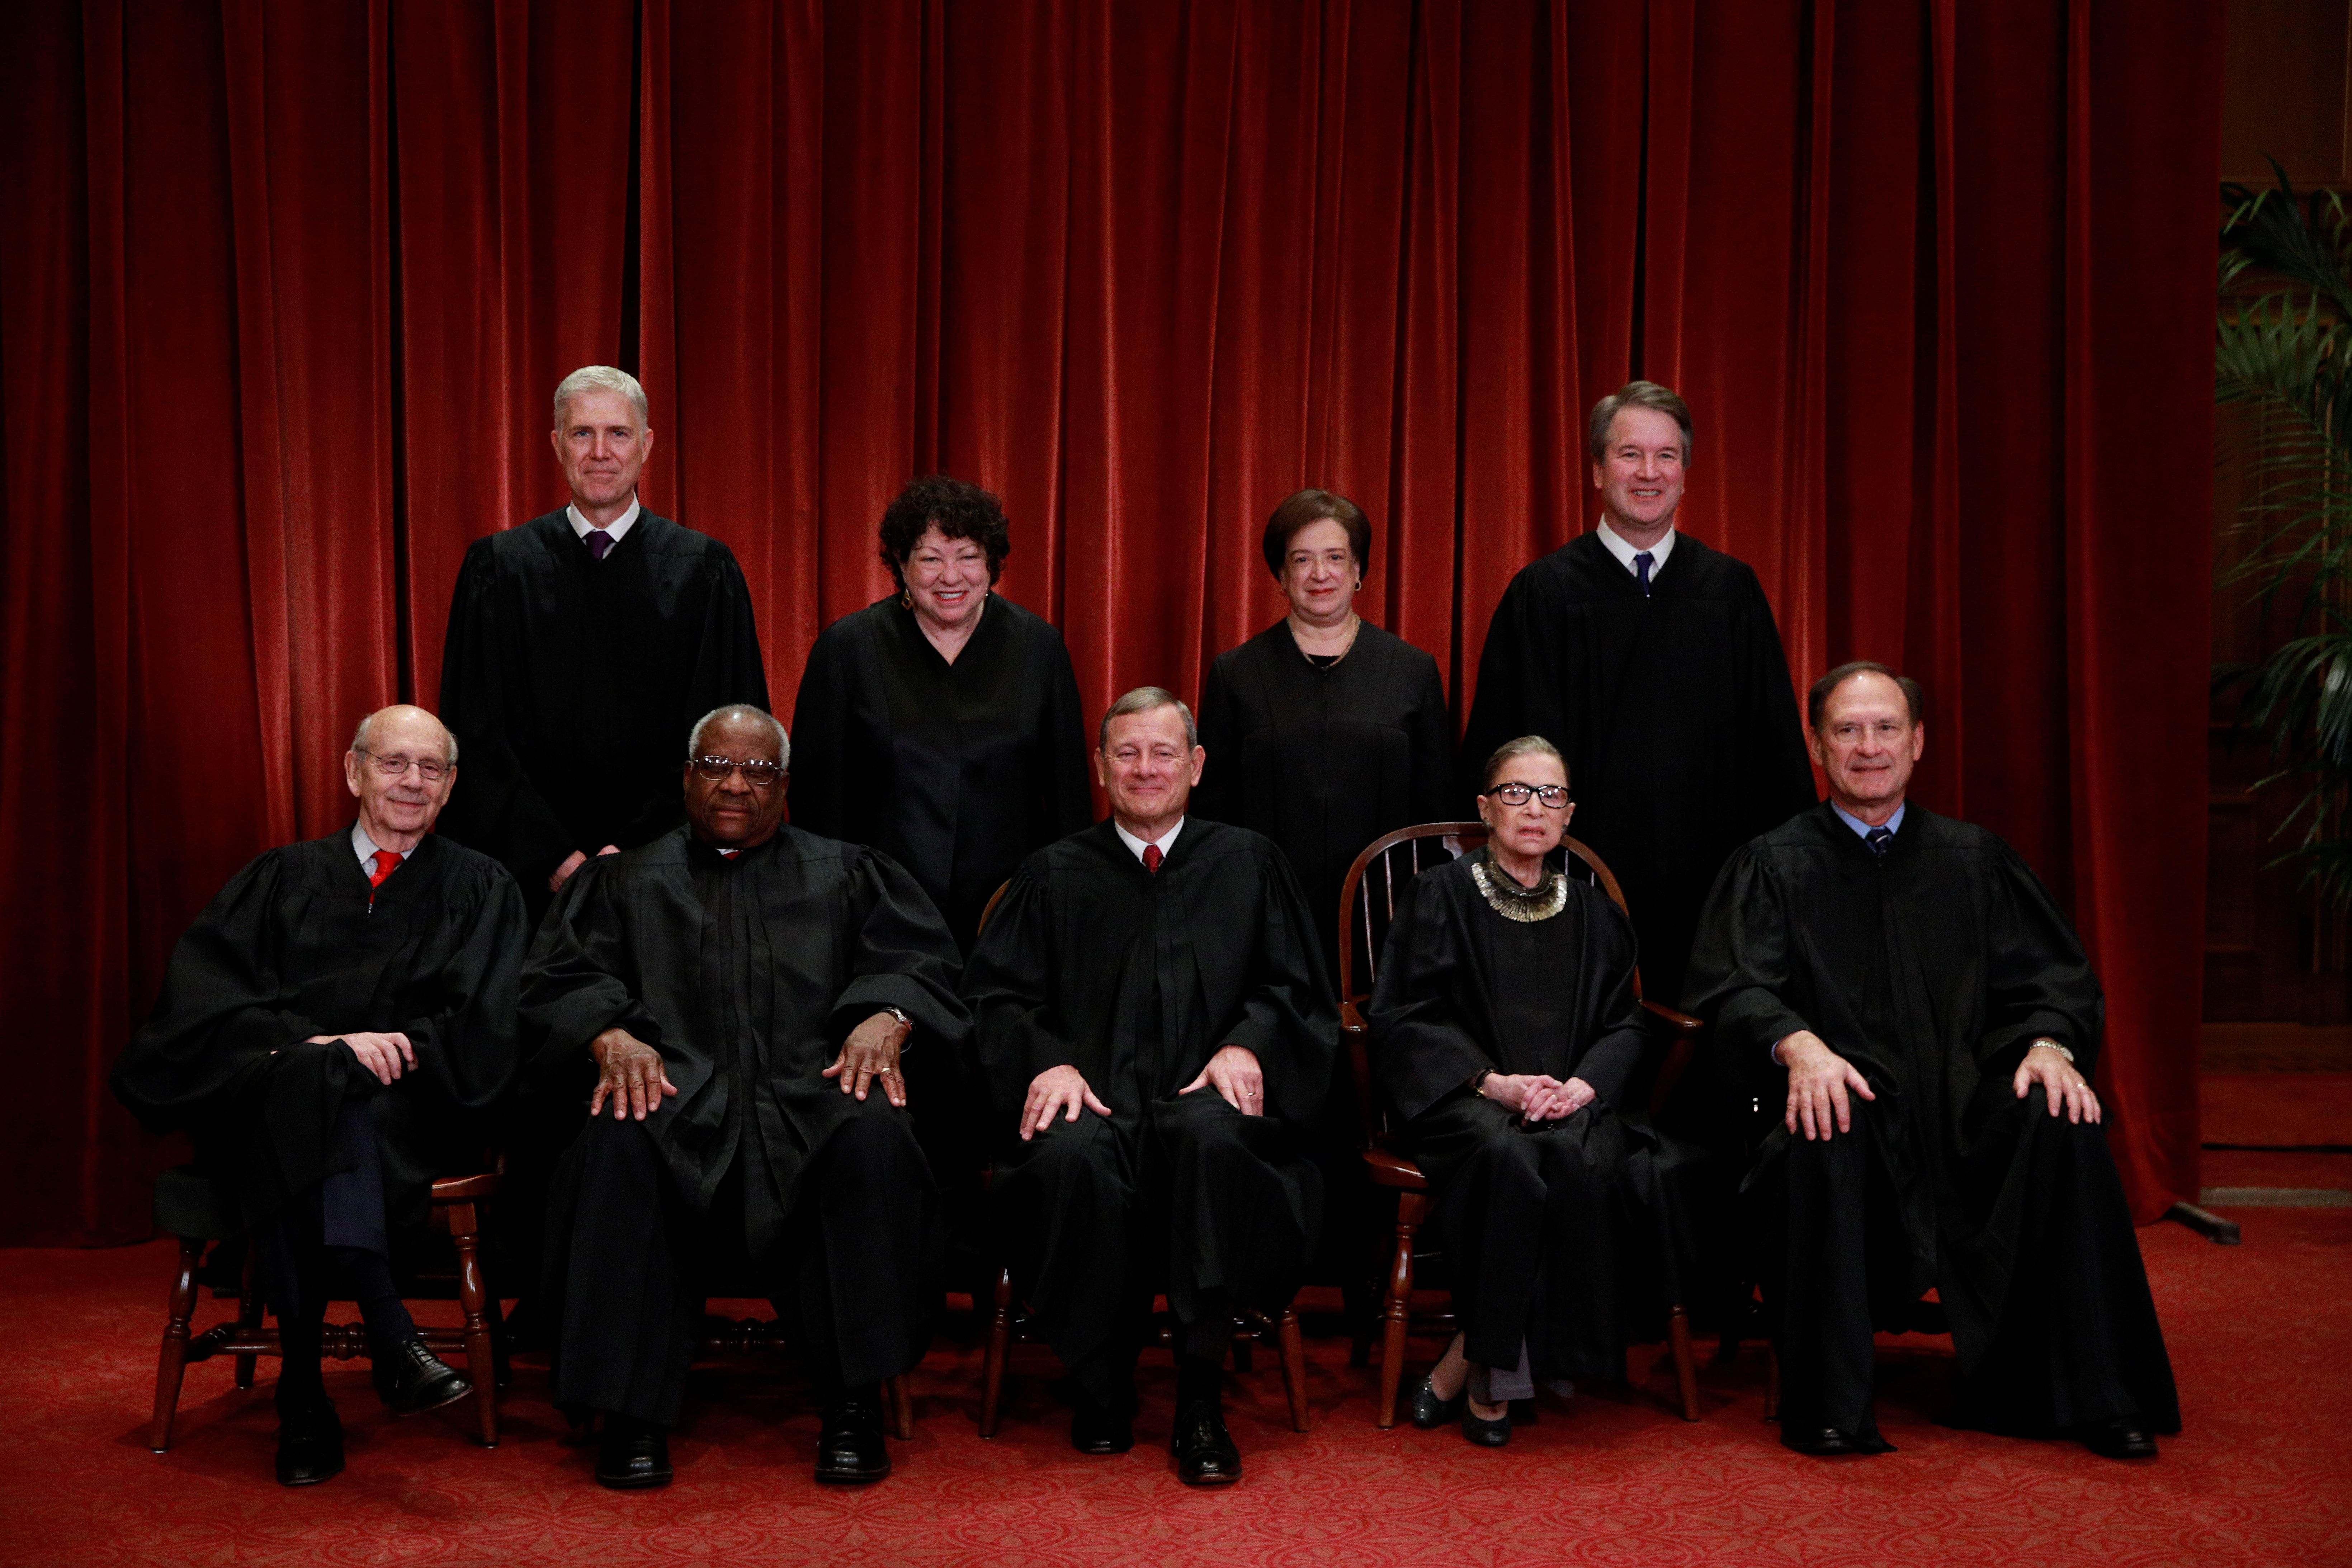 U.S. Supreme Court justices pose for their group portrait at the Supreme Court in Washington, U.S., November 30, 2018. Seated (L-R): Associate Justice Stephen Breyer, Associate Justice Clarence Thomas, Chief Justice of the United States John G. Roberts, Associate Justice Ruth Bader Ginsburg and Associate Justice Samuel Alito, Jr. Standing behind (L-R): Associate Justice Neil Gorsuch, Associate Justice Sonia Sotomayor, Associate Justice Elena Kagan and Associate Justice Brett M. Kavanaugh  REUTERS/Jim Young